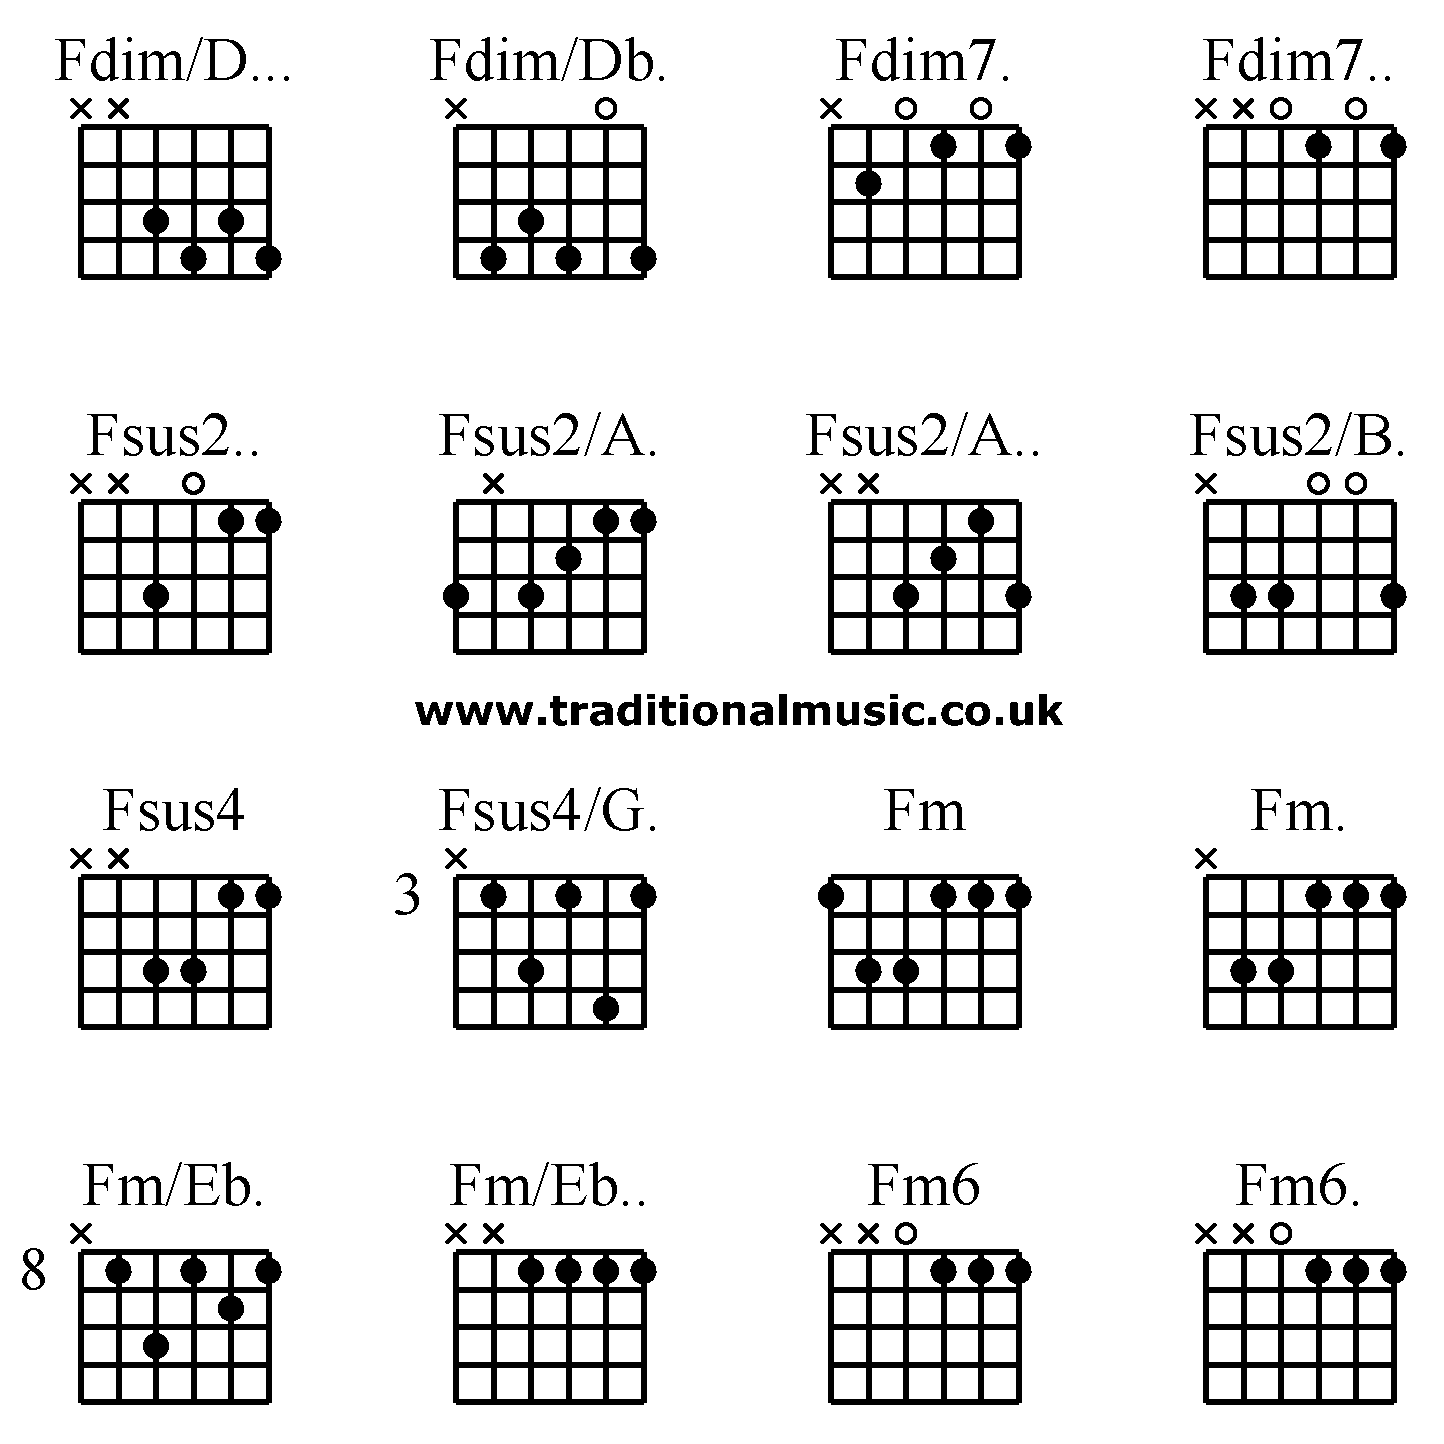 Guitar Chords Advanced Fdimd Fdimdb Fdim7 Fdim7 Fsus2 Fsus2